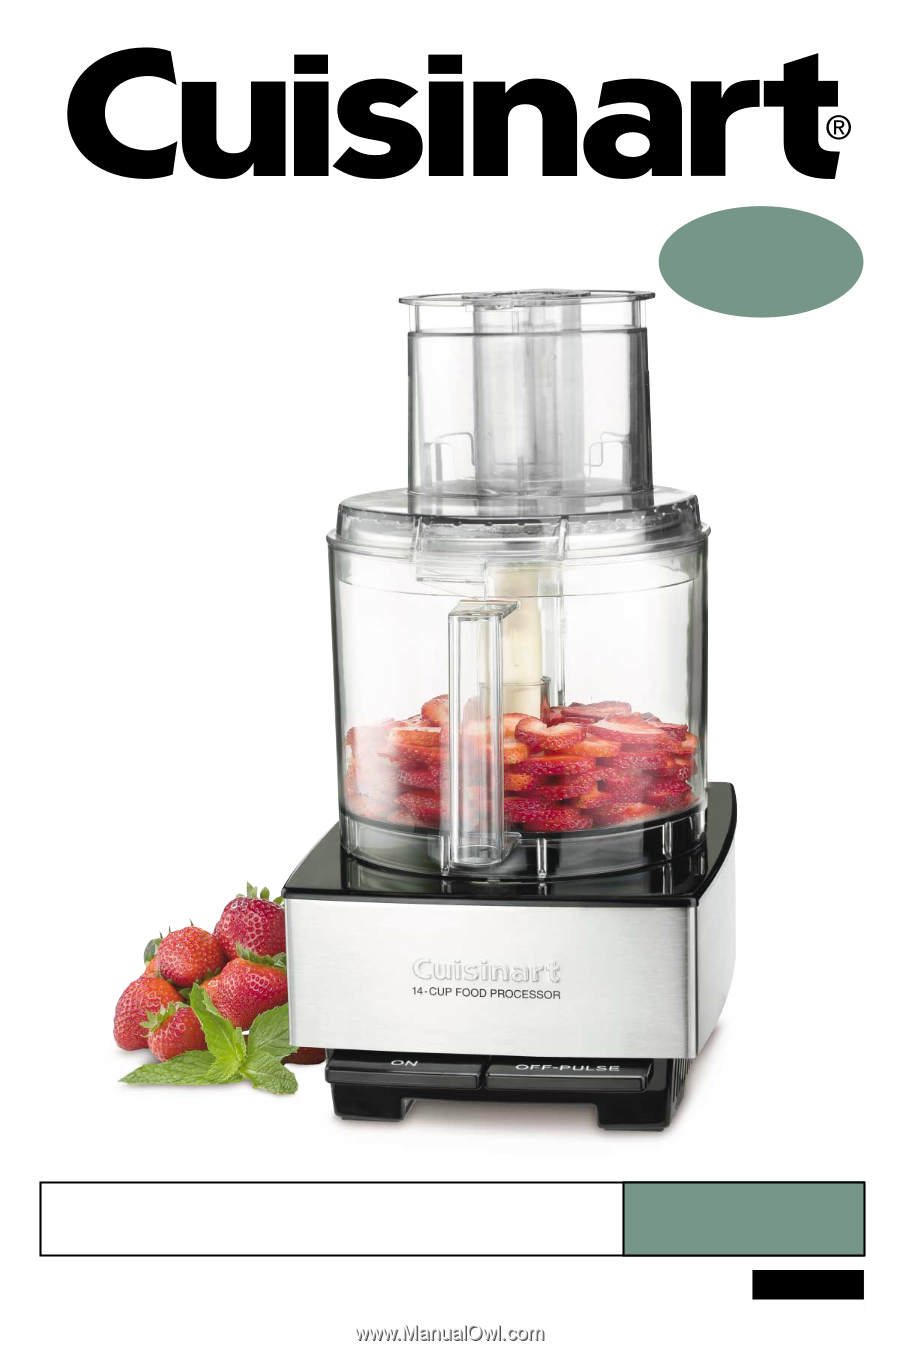 Cuisinart Food Processor Instruction Guide